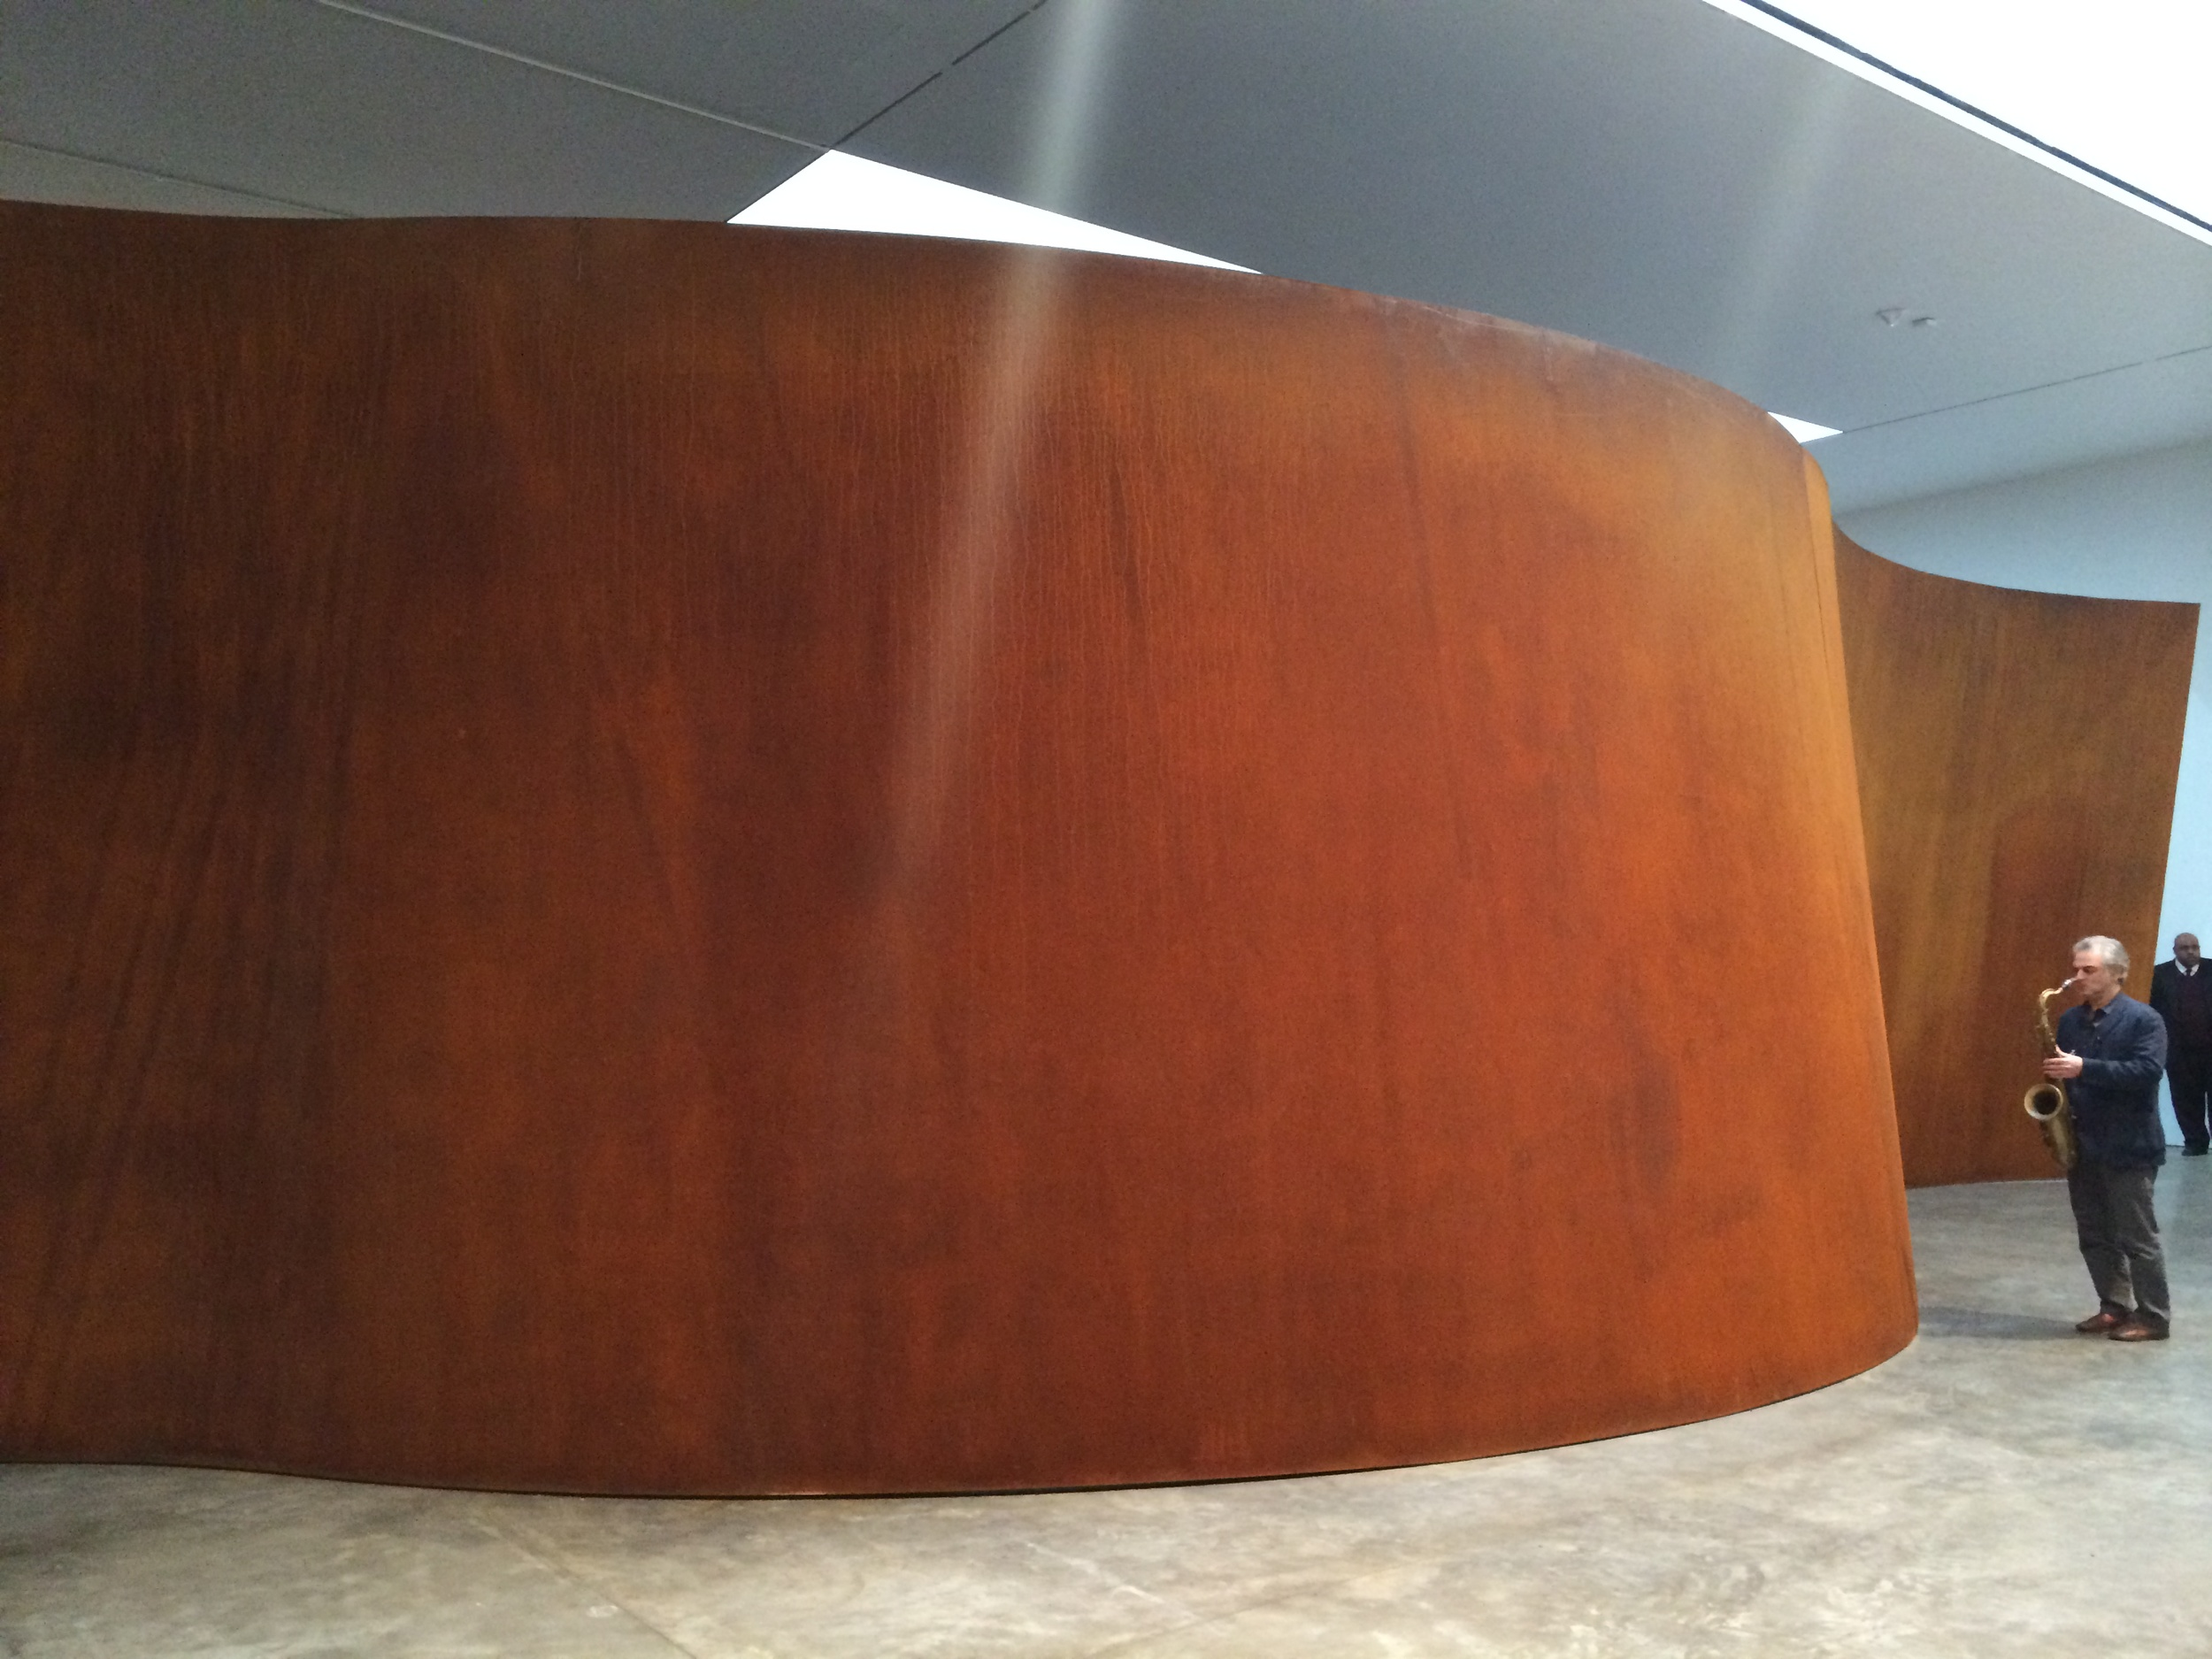 Musician Avram Fefer contemplates sculptural form and its sonic implications as he approaches Richard Serra's  Inside Out  at Gagosian Gallery, New York.